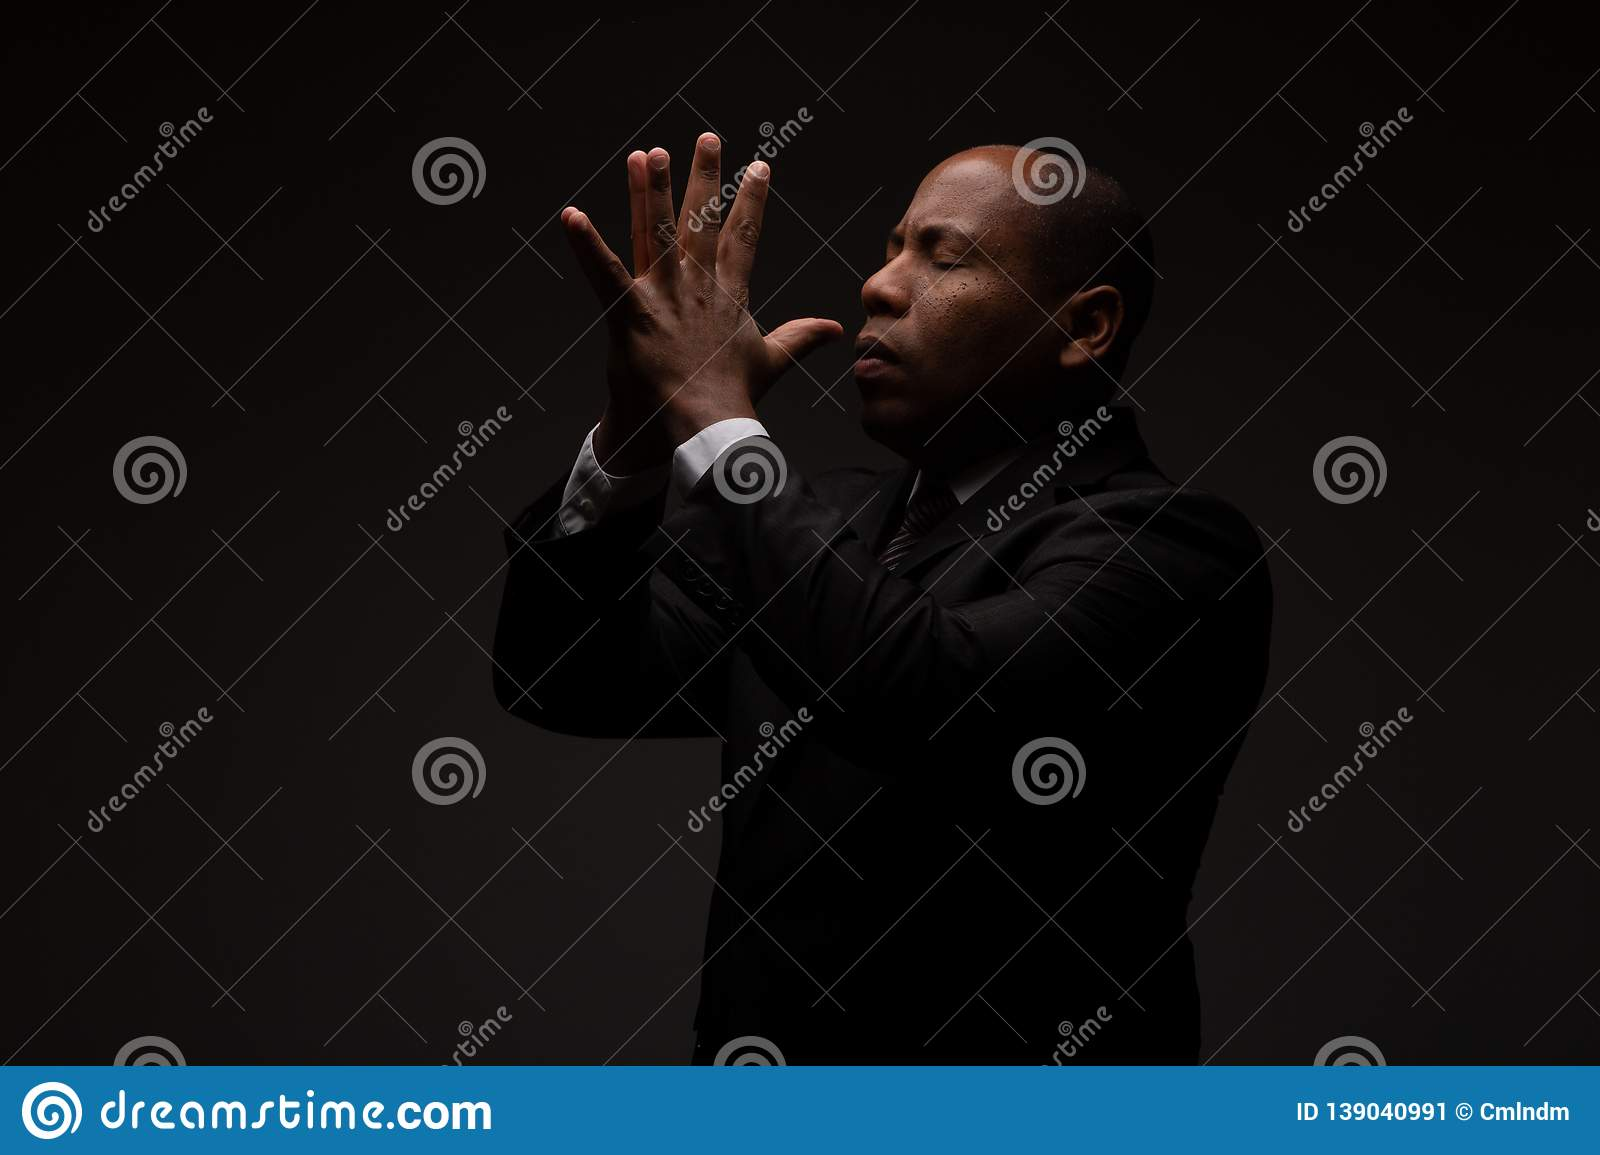 African American Christian Man Praying and Seeking Guidance from God